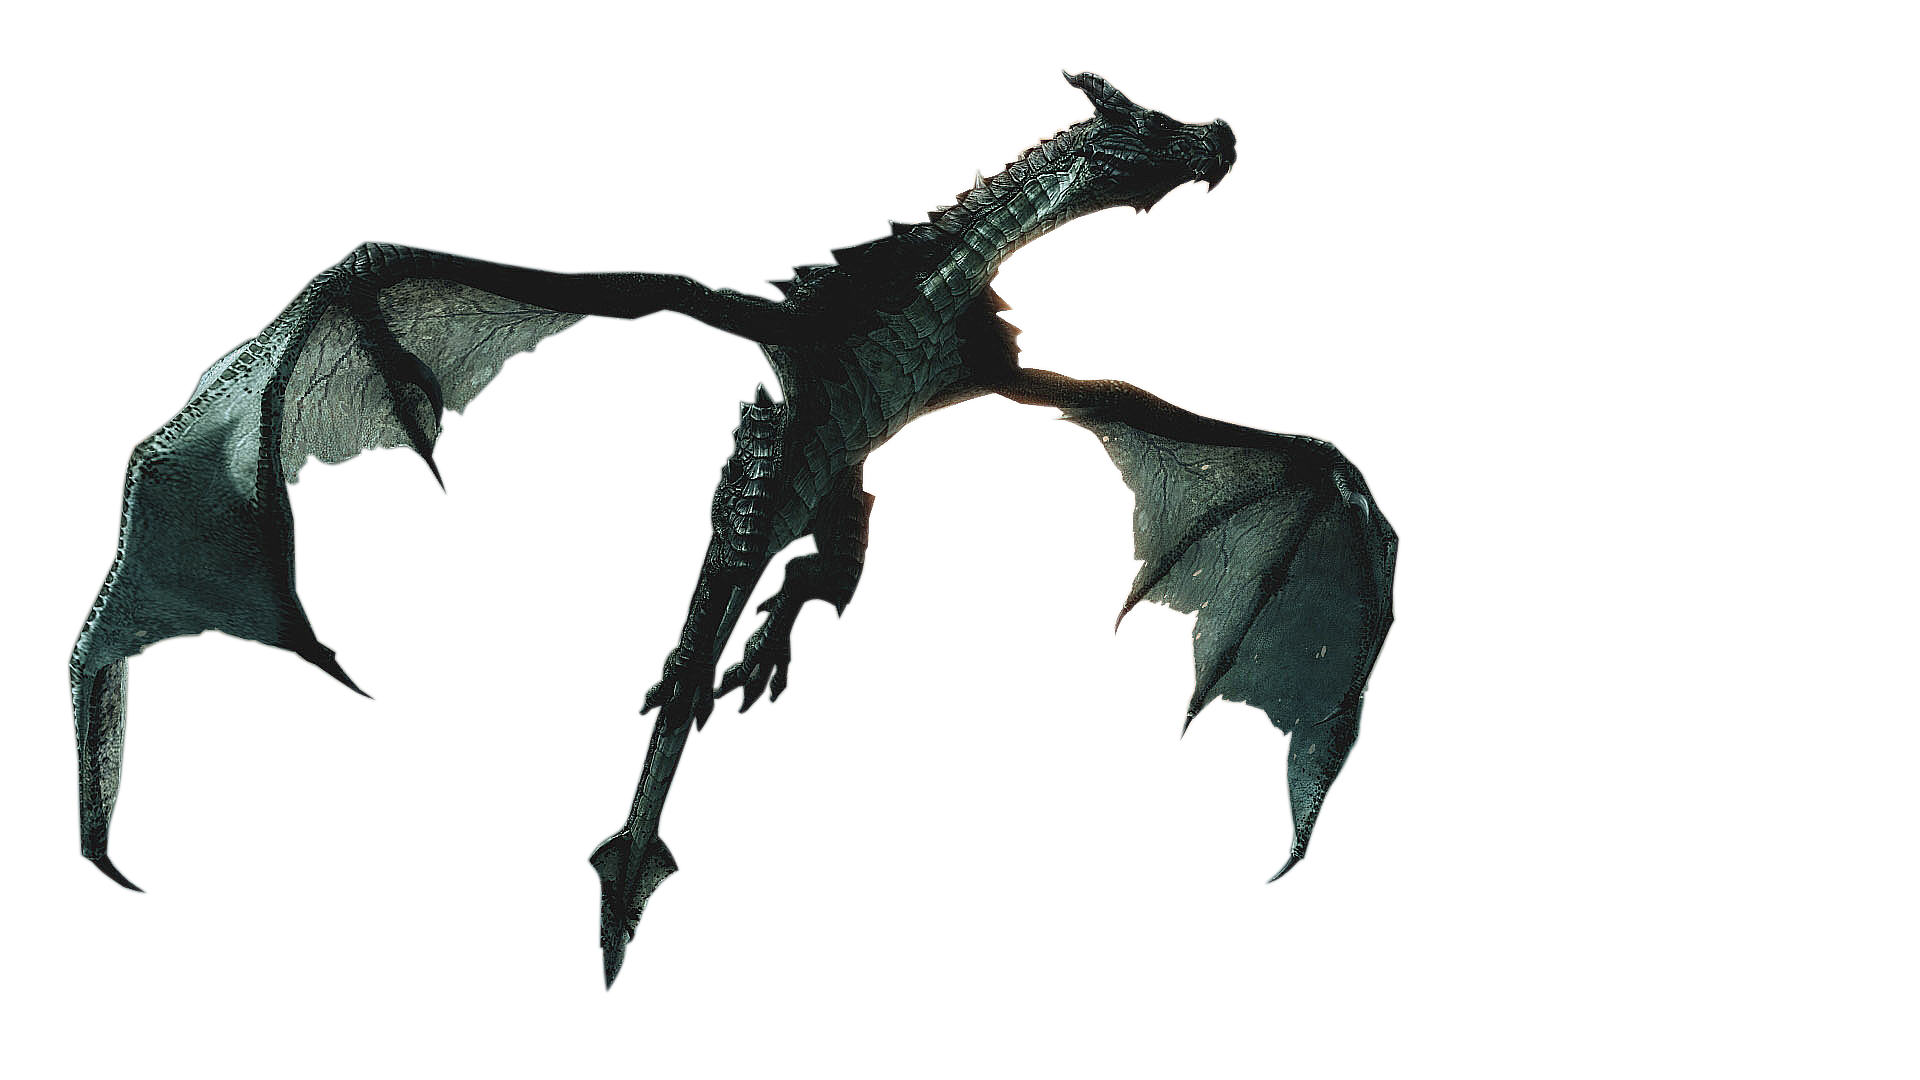 the_elder_scrolls_v_skyrim_dragon_render_by_zero0kiryu-d6bxxi0.png